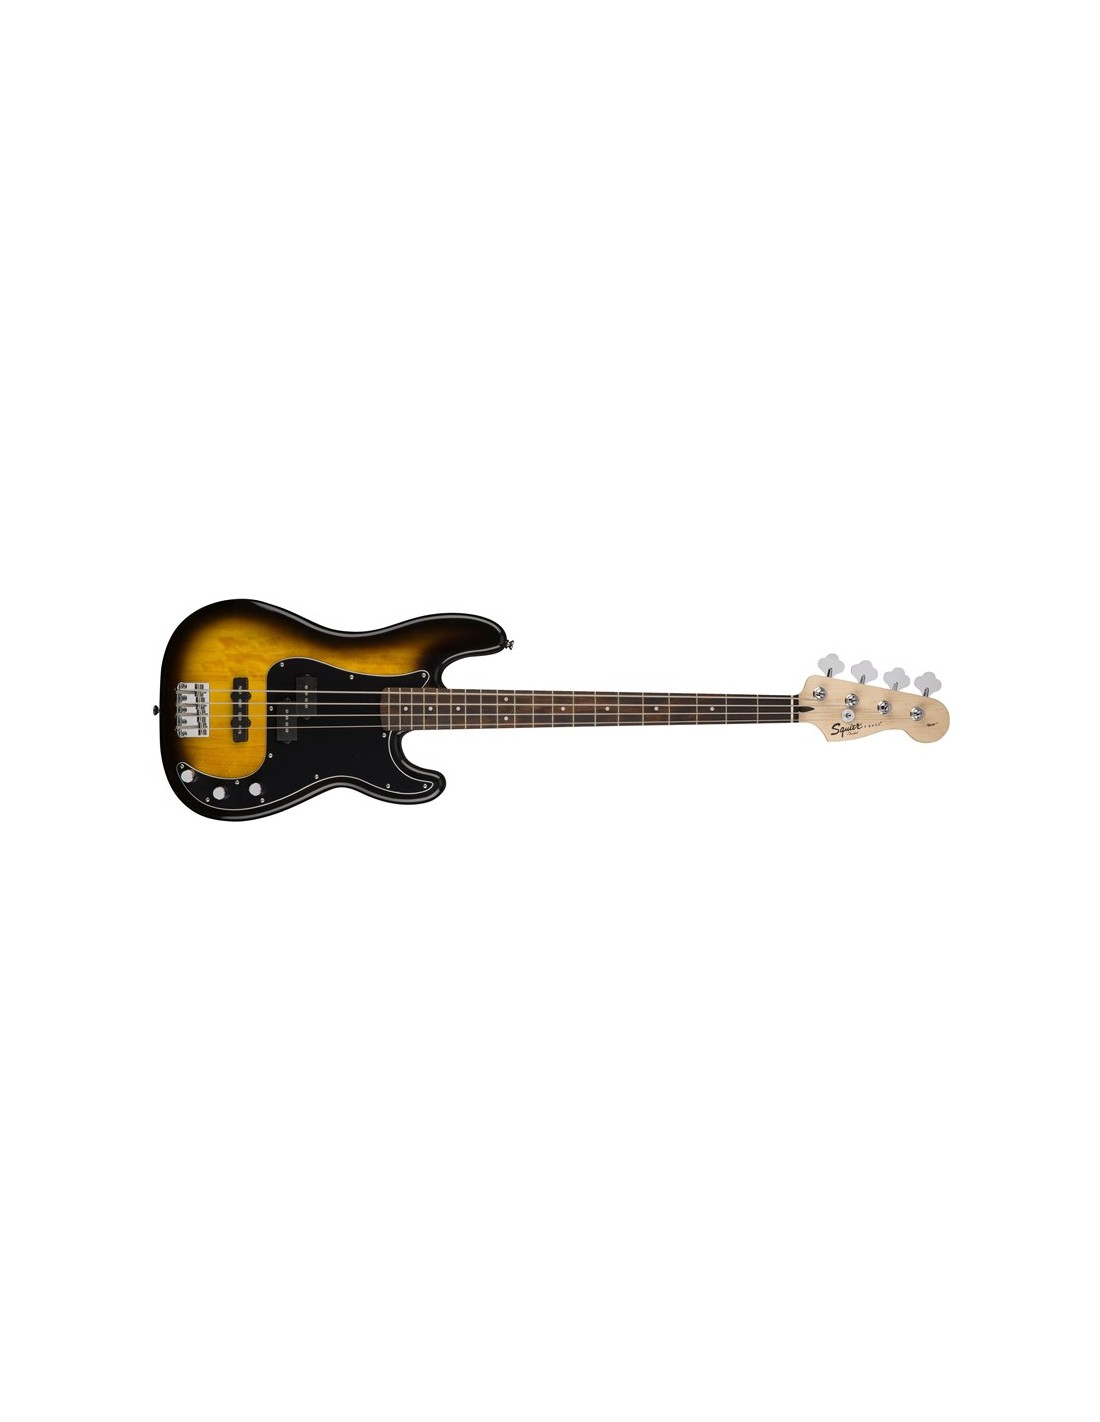 Squier Affinity Pj Bass Guitar Pack With Fender Rumble 15 Amplifier